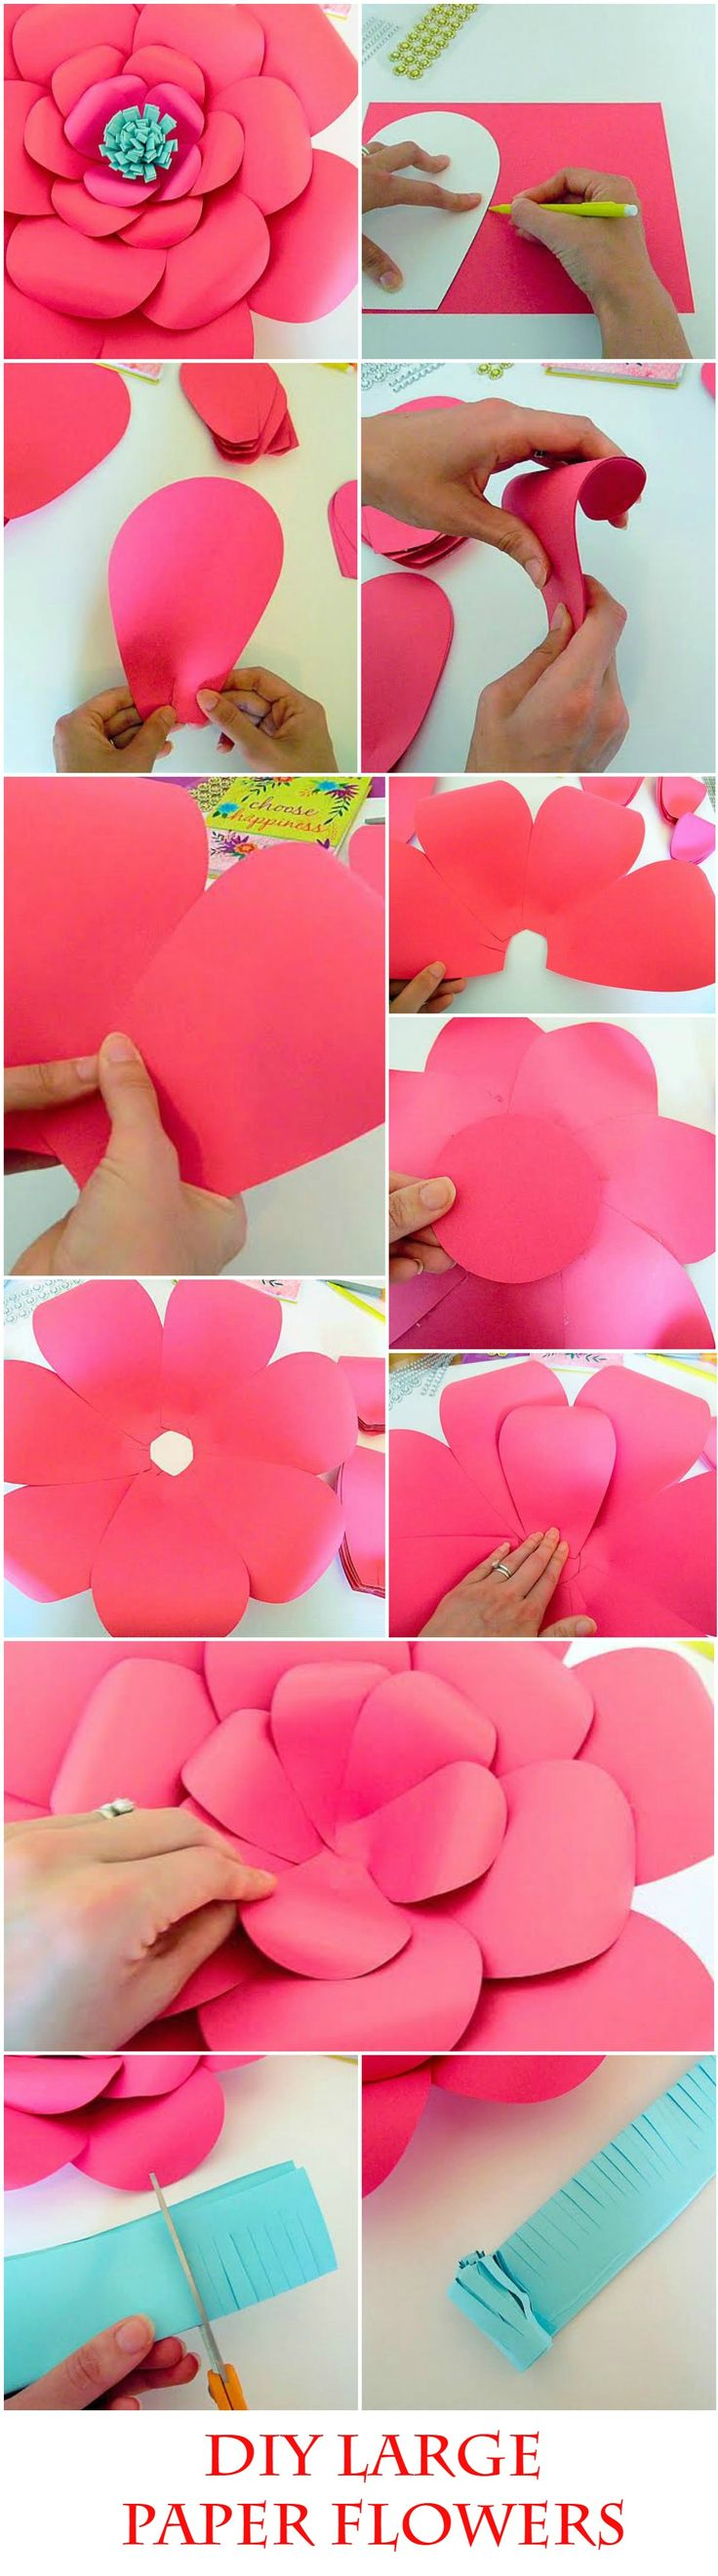 DIY Giant Paper flower templates & tutorial, DIY Paper flower making kit…